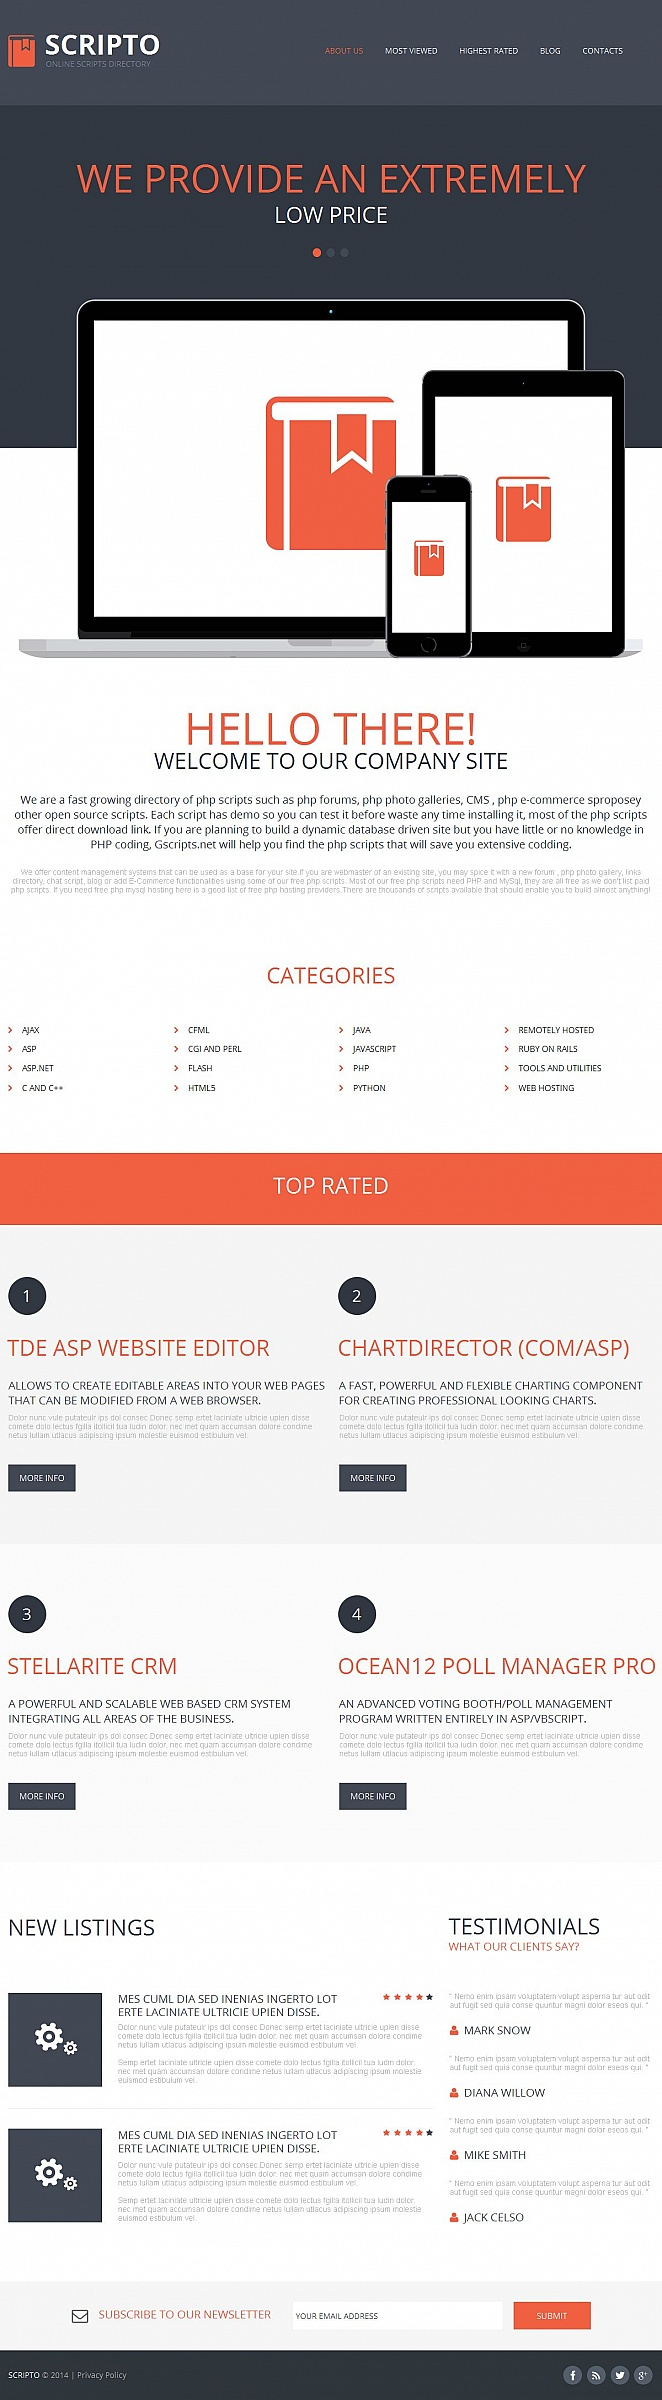 Software Website Template with User-Friendly CMS - image